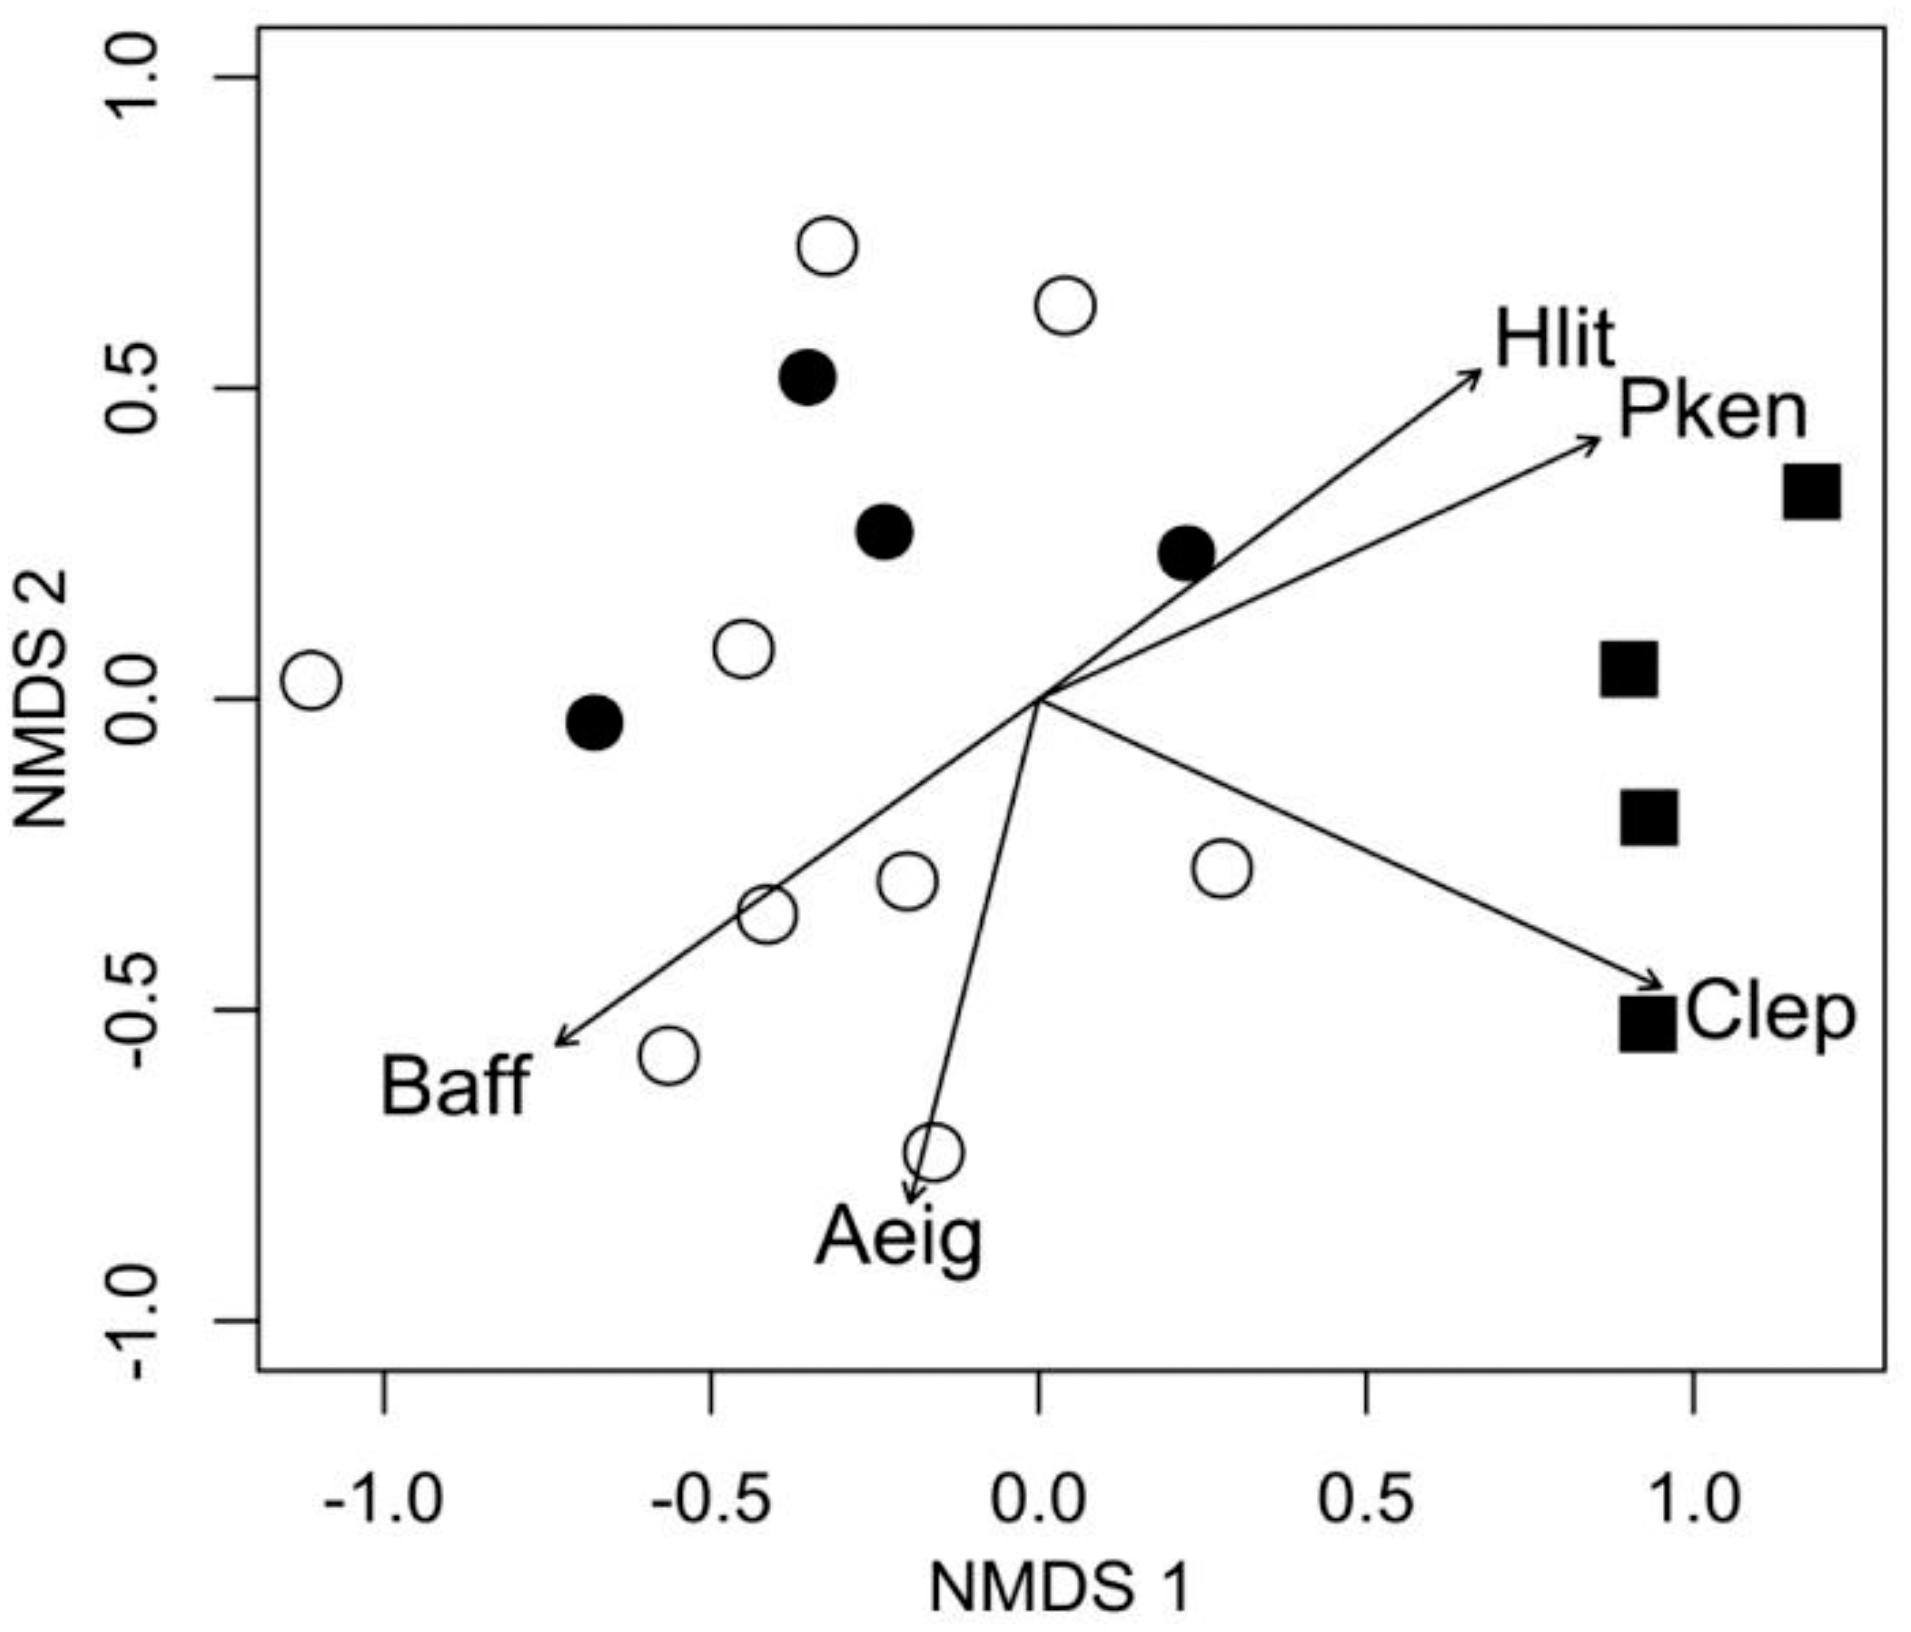 Changes in fish assemblages caused by different Neotropical